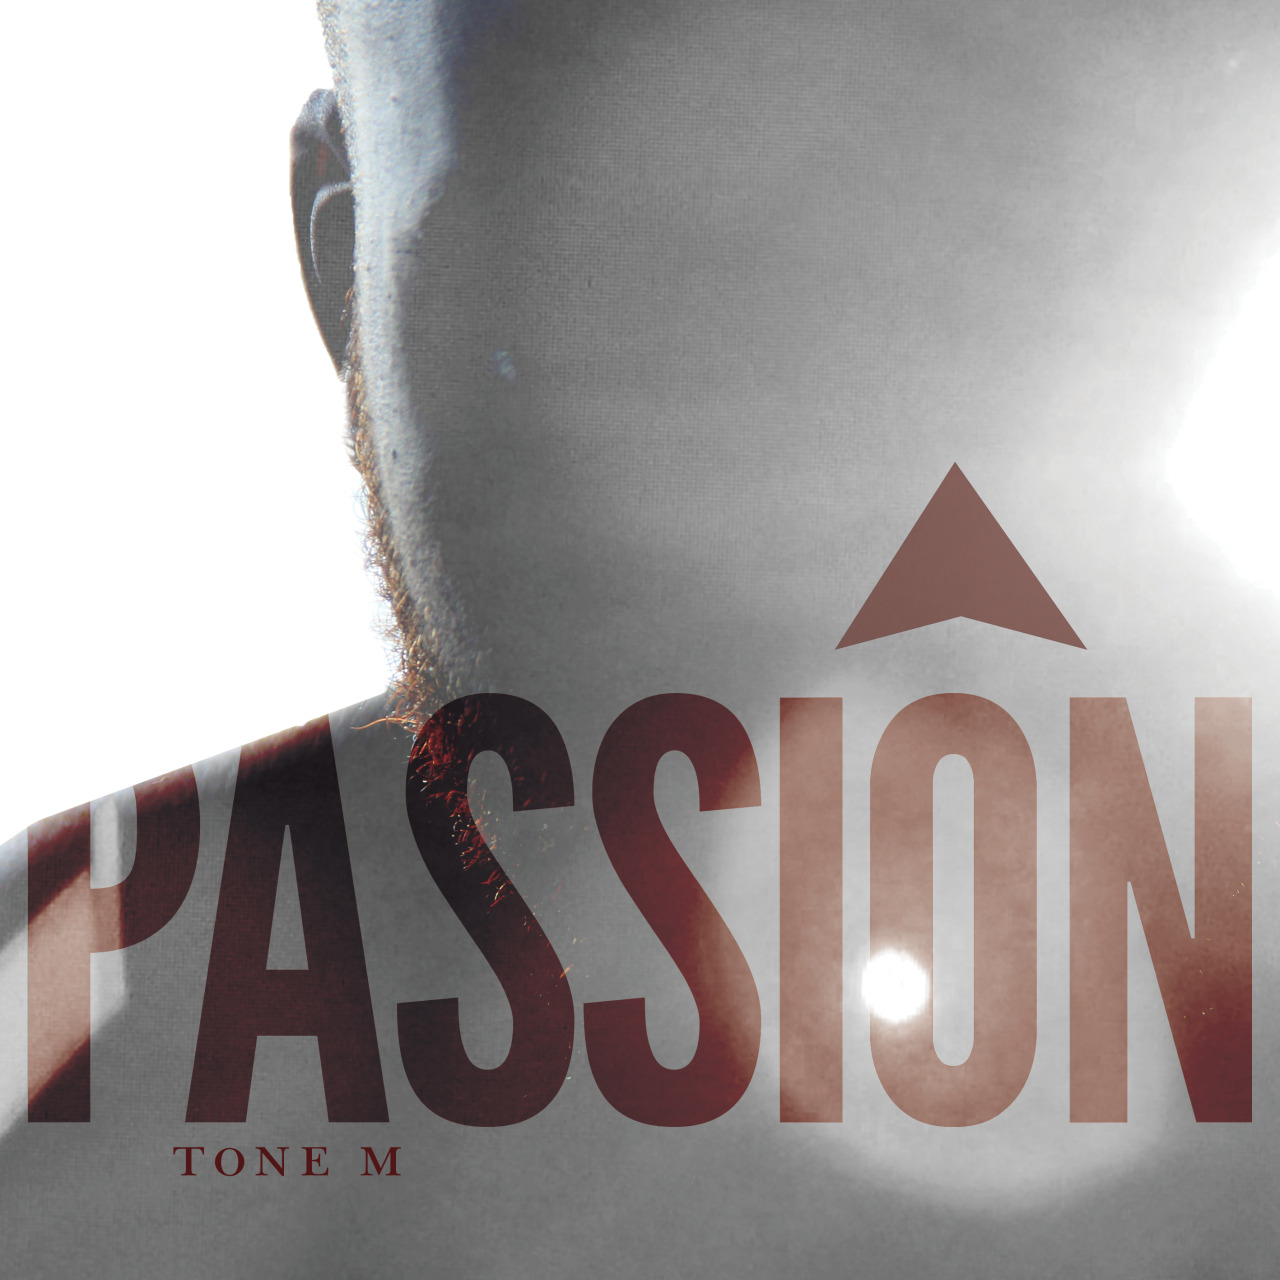 PASSION DROPS TOMORROW!!! THE CREED SAGA BEGINS!!! THIS TRACK IS TOO TURNT!!! Y'ALL AIN'T READY!!! I CAN'T CONTAIN MY EXCITEMENT REAL TALK!!!